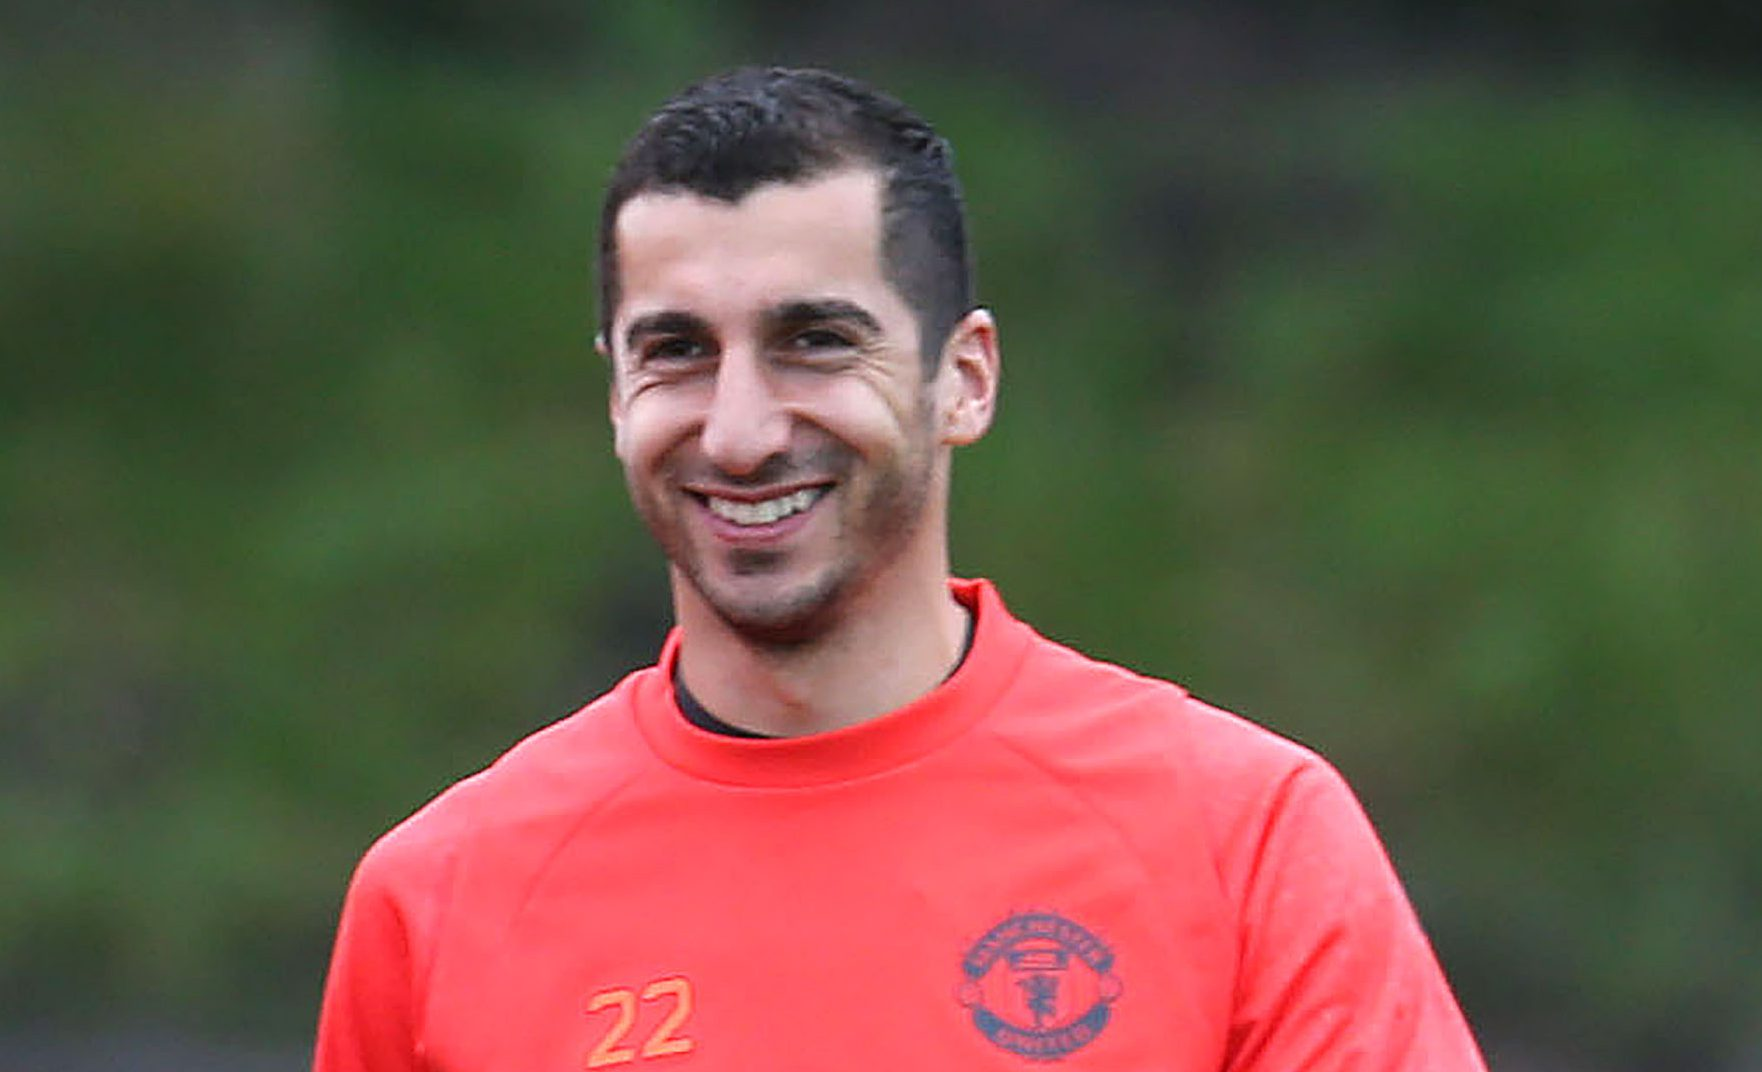 MANCHESTER, ENGLAND - SEPTEMBER 28: Henrikh Mkhitaryan of Manchester United smiles during a Manchester United Training session at Aon Training Complex on September 28, 2016 in Manchester, England. (Photo by John Peters/Man Utd via Getty Images) H (Photo by John Peters/Man Utd via Getty Images)